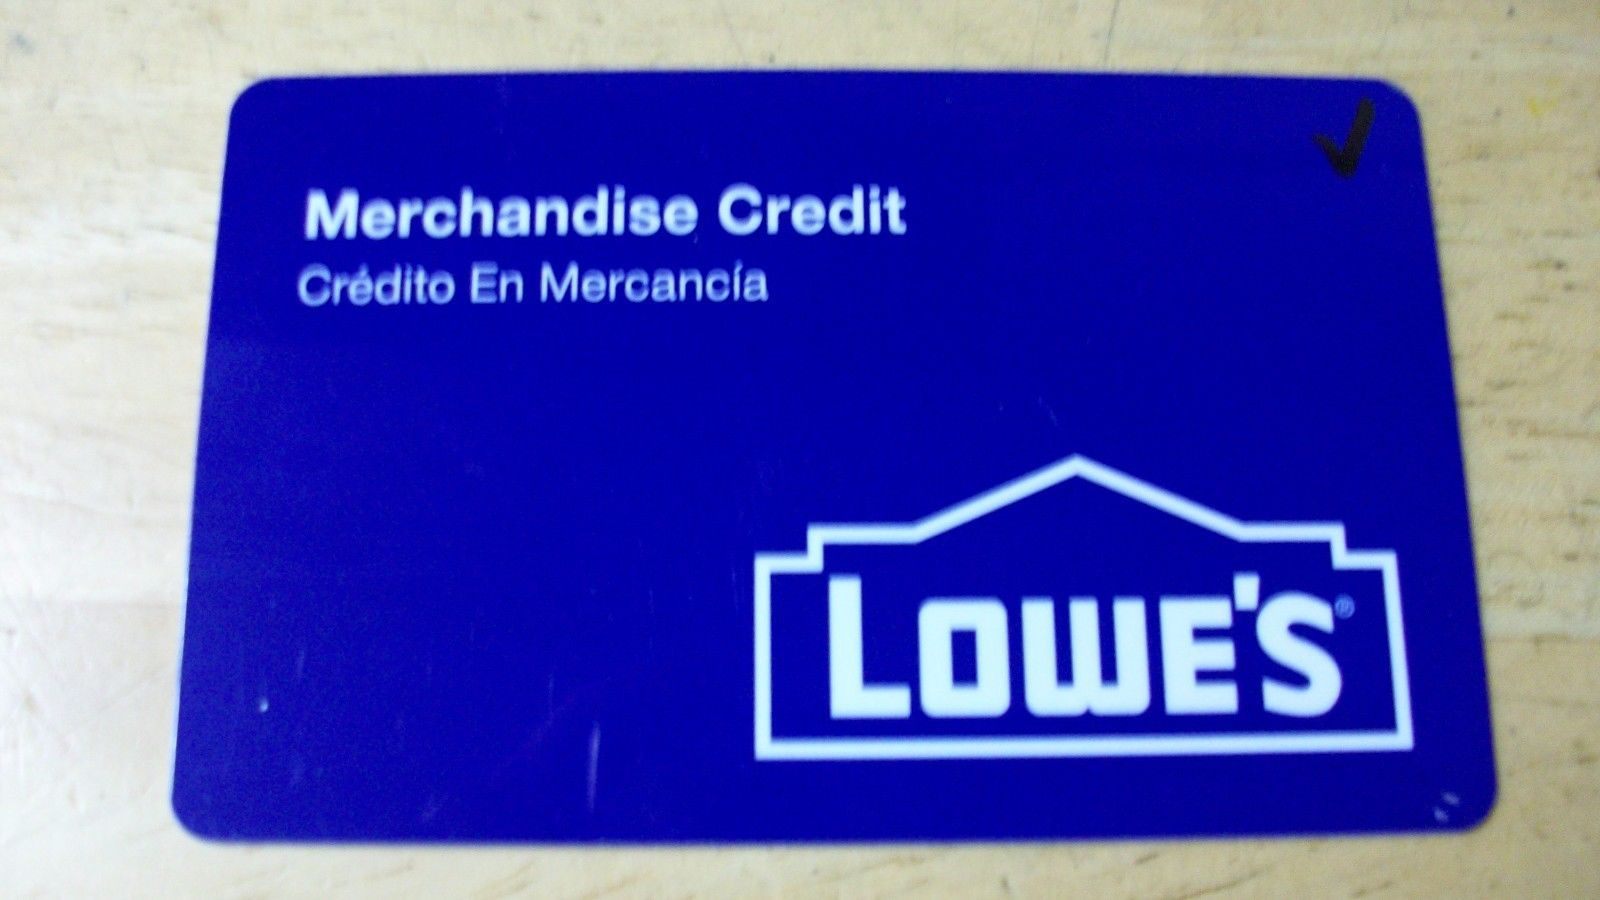 $176.43 Lowe's Merchandise Credit Gift Card . Mail Delivery https://t.co/RmdDBqlrDD https://t.co/gHUoXaAcpK